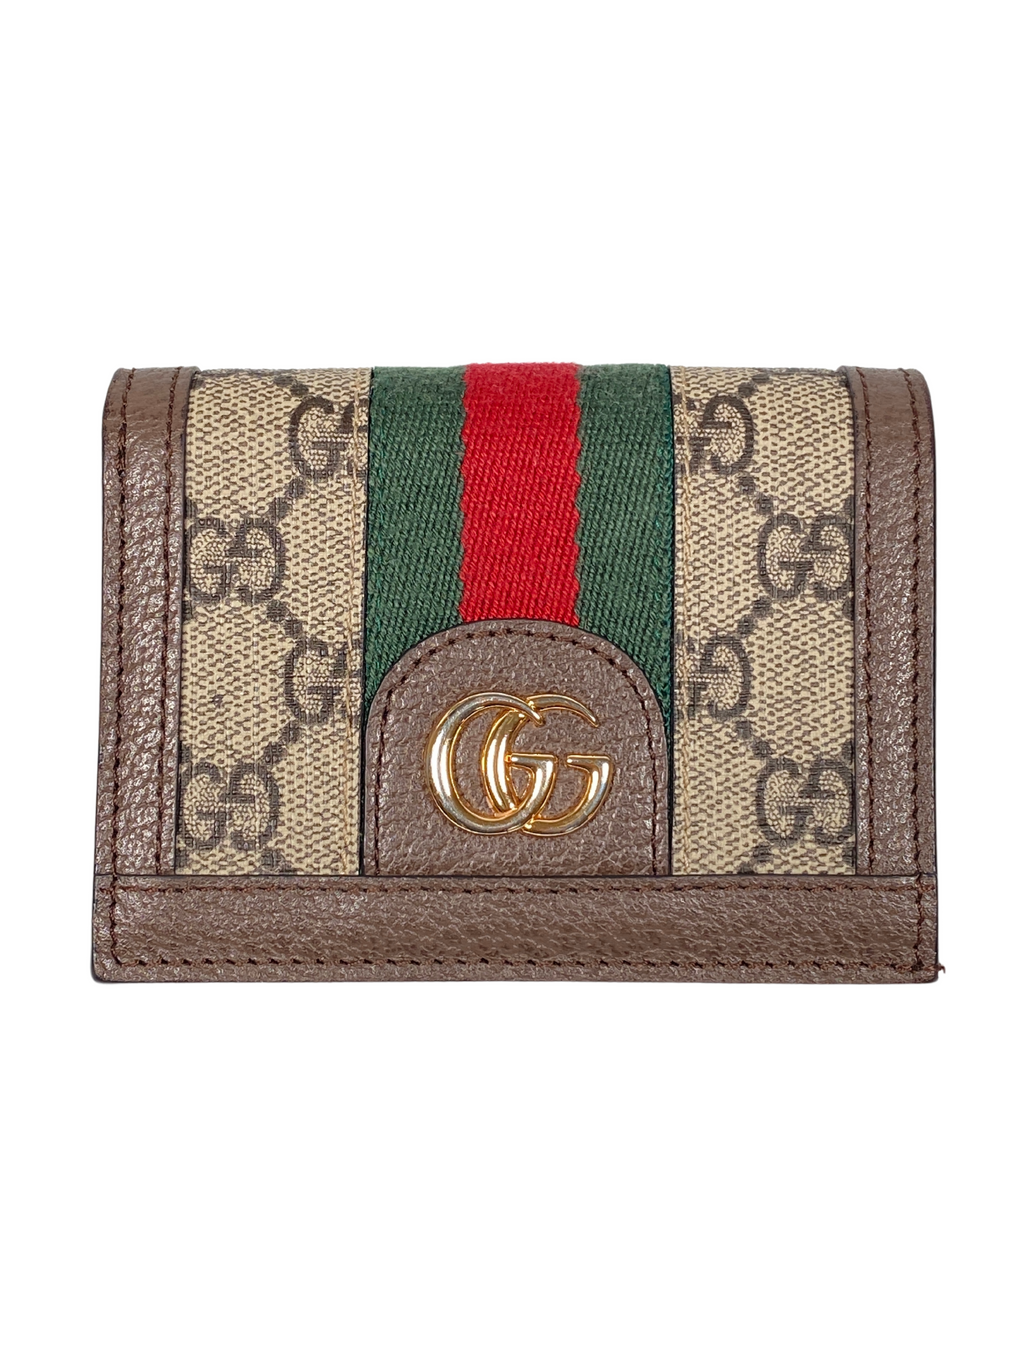 GUCCI - OPHIDIA GG LEATHER WALLET CARD CASE